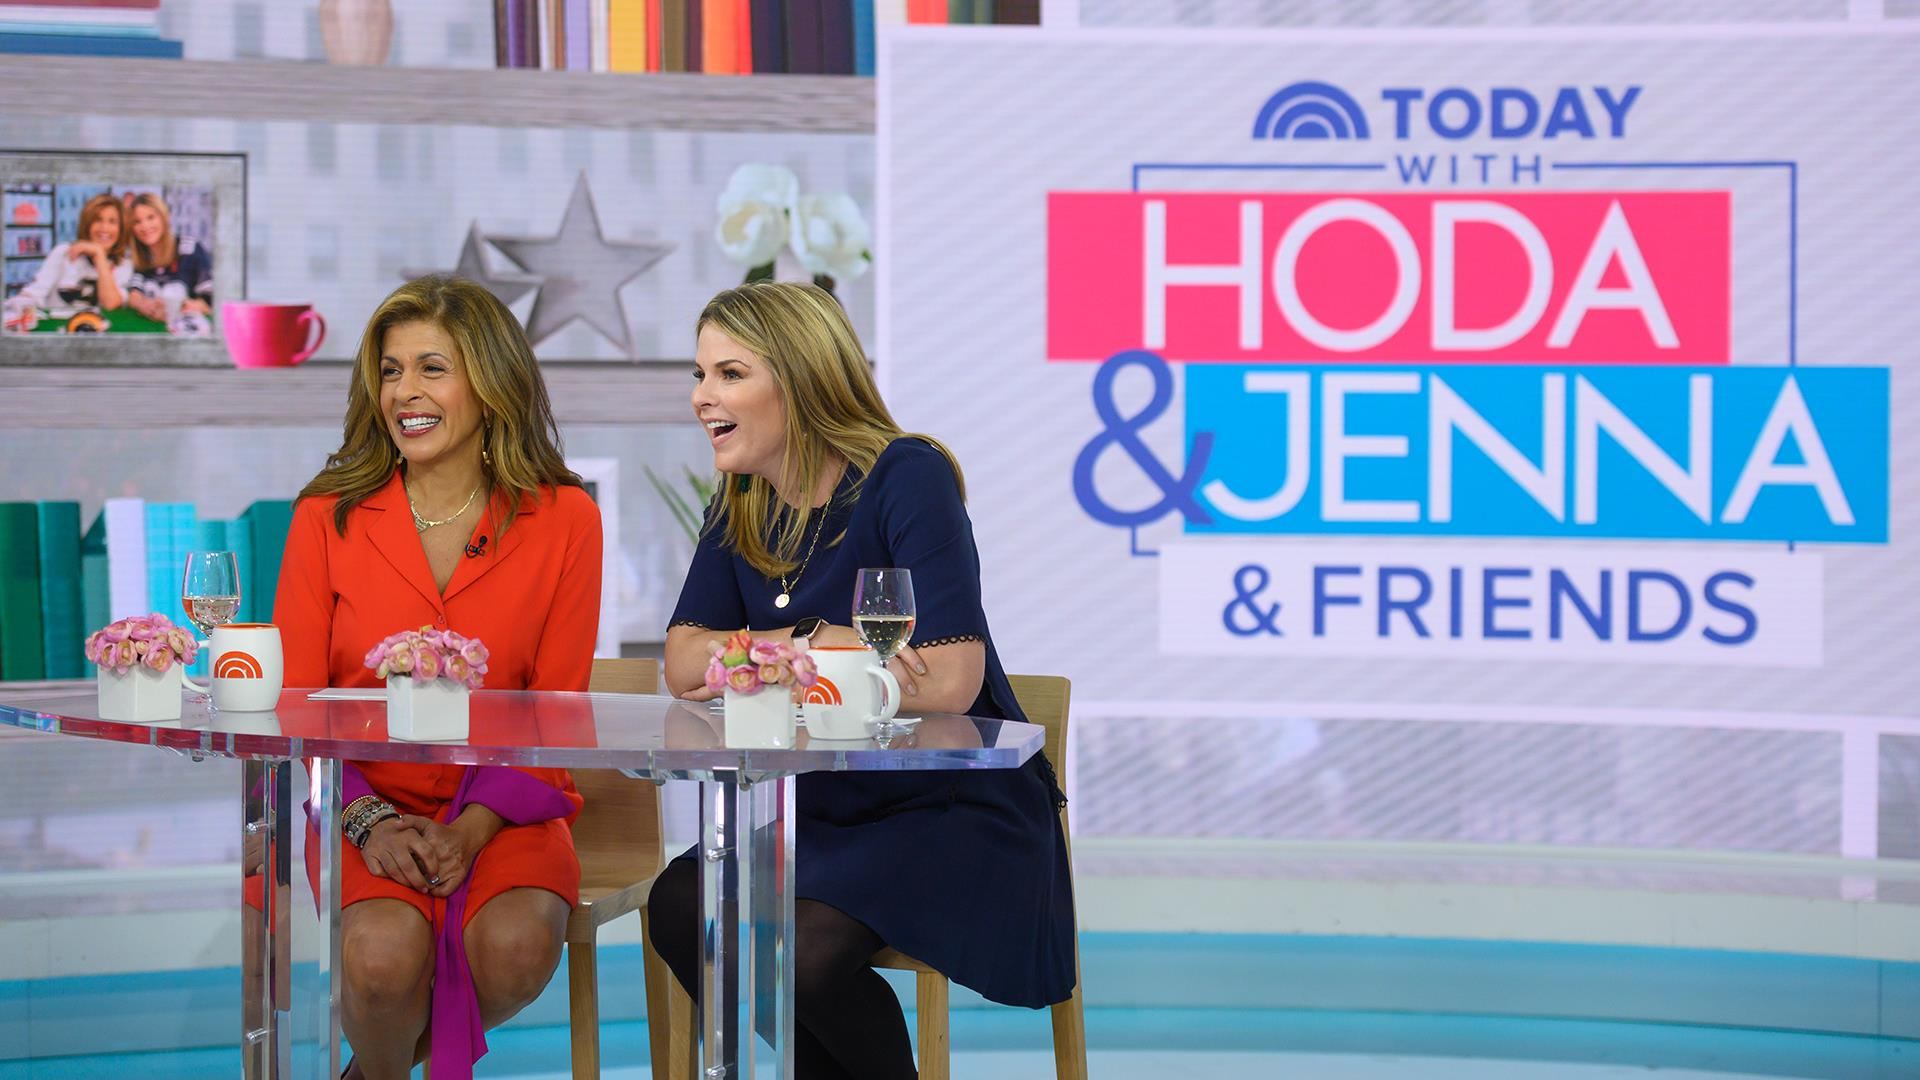 Hoda and Jenna are launching shows with a live audience!